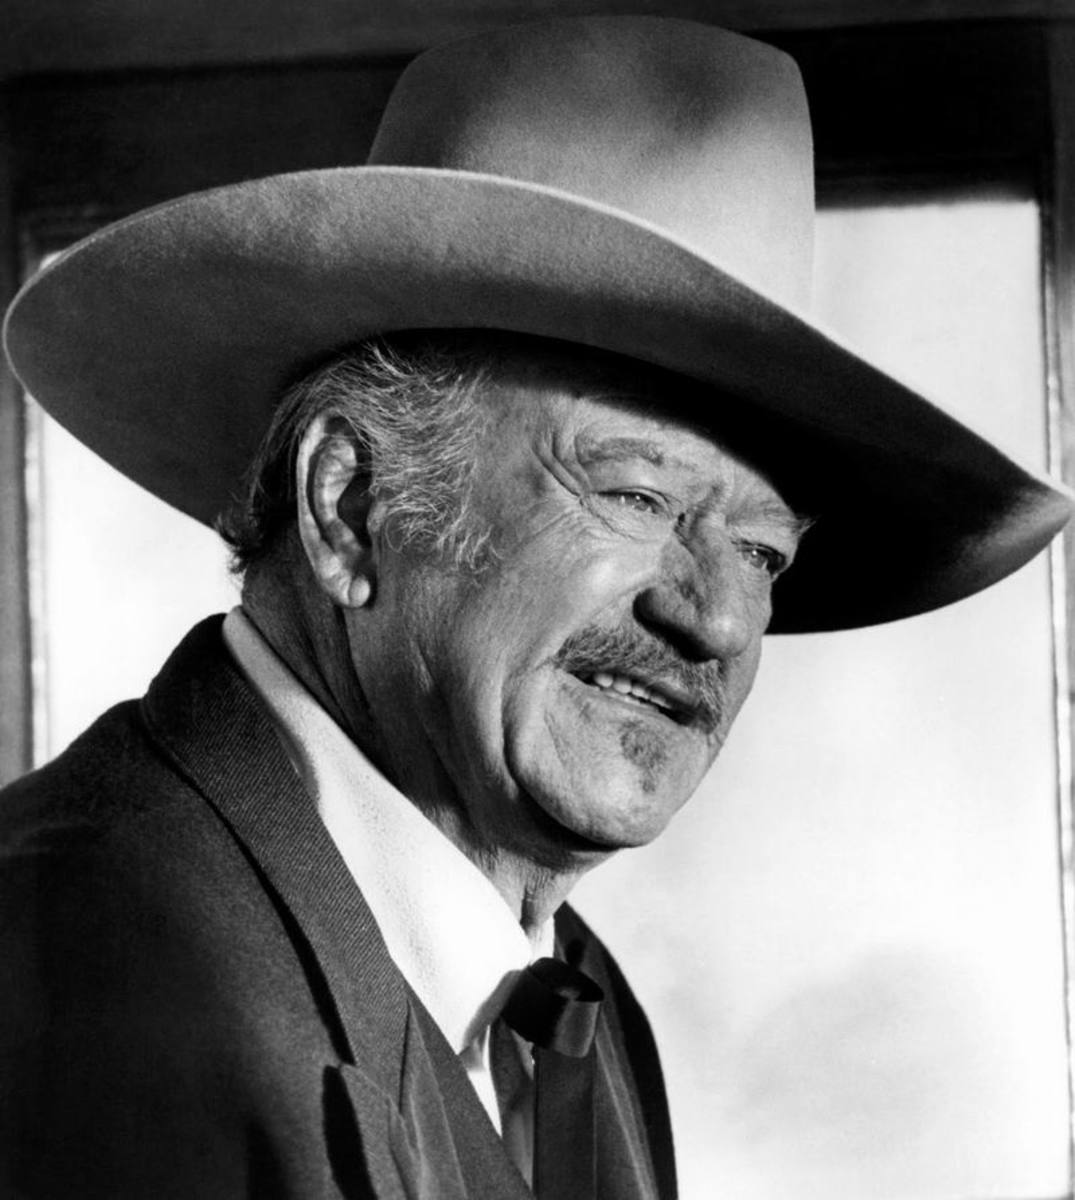 John Wayne in The Shootist (1976) Publicity photo